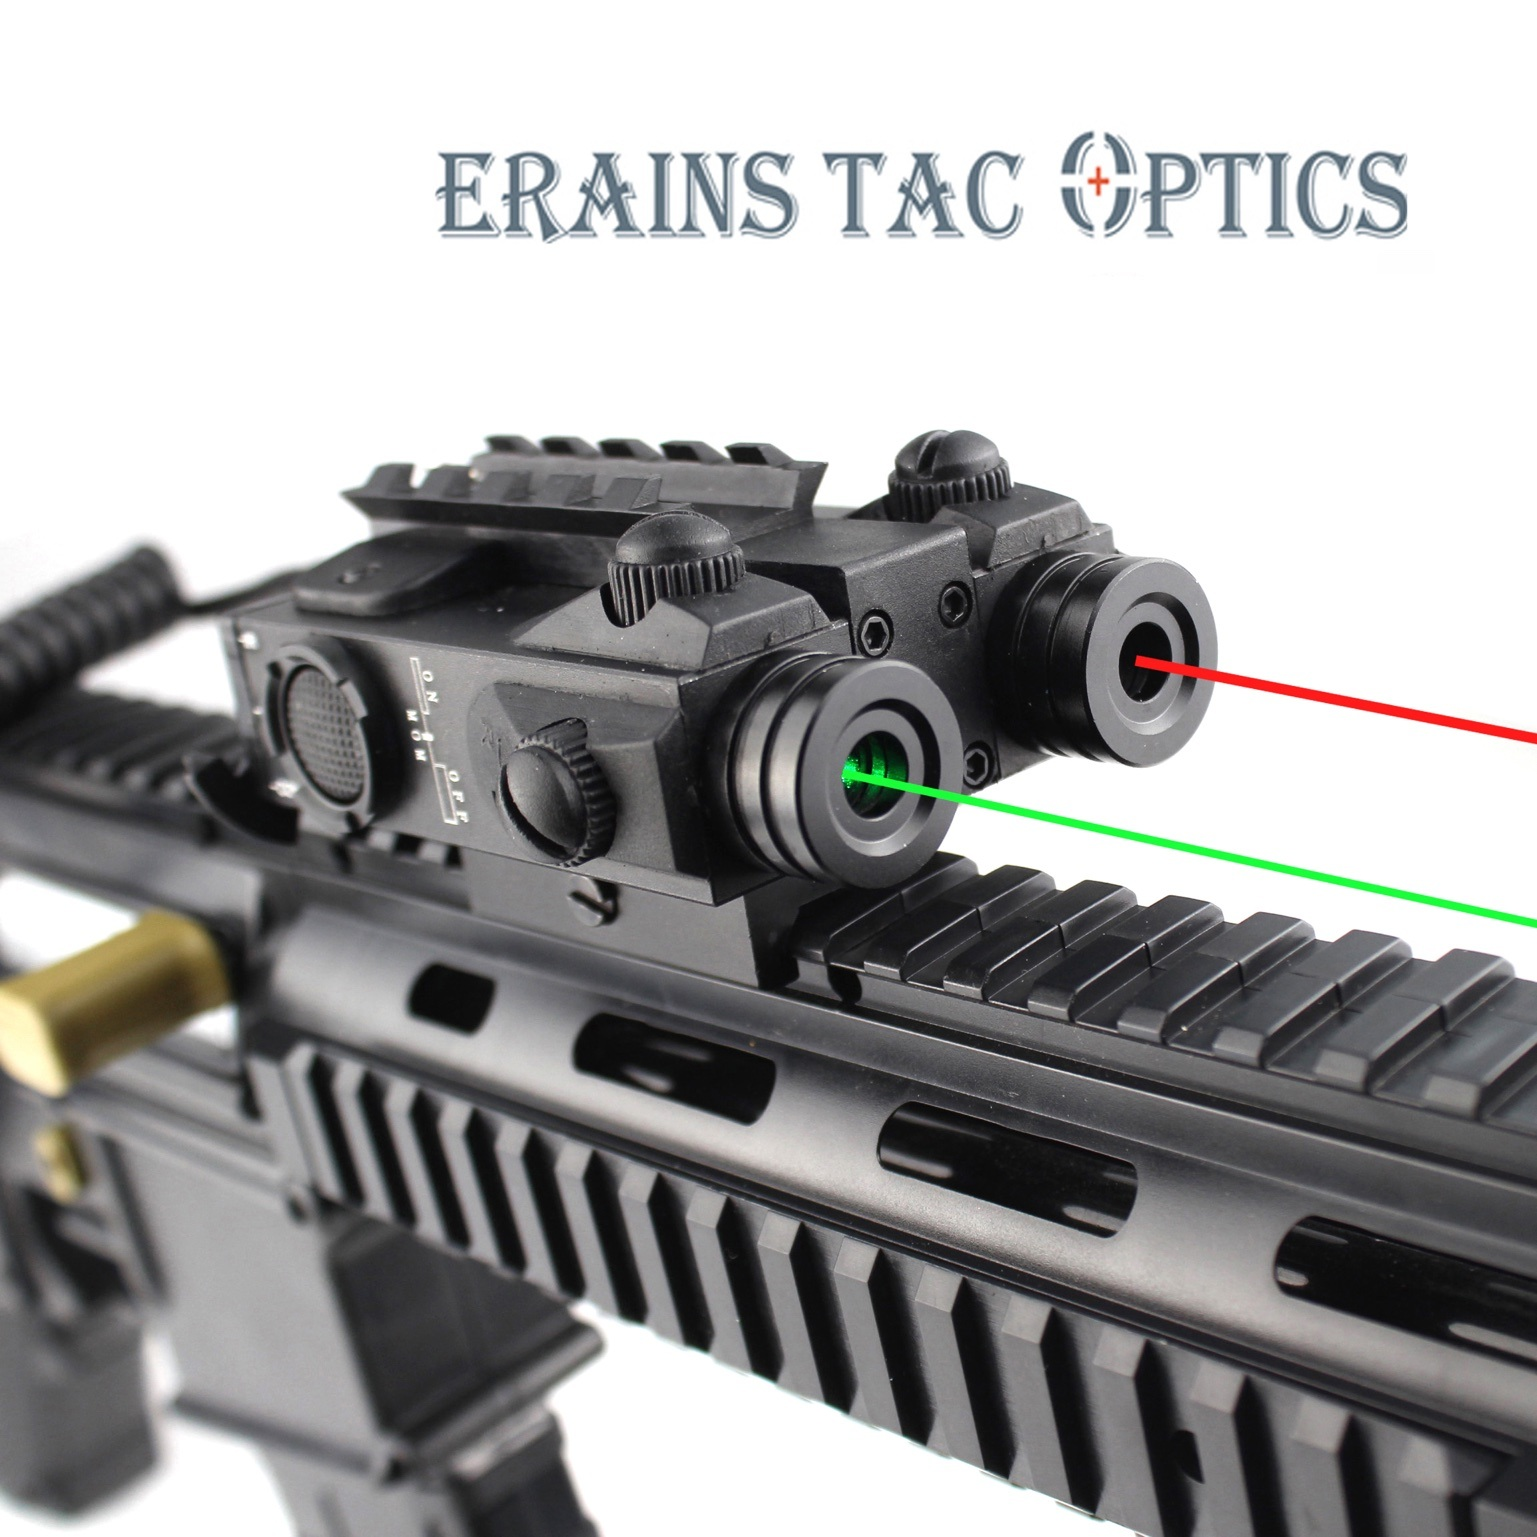 1 set Tactical Red Laser Sight Scope with tail switch for Rifle with optical